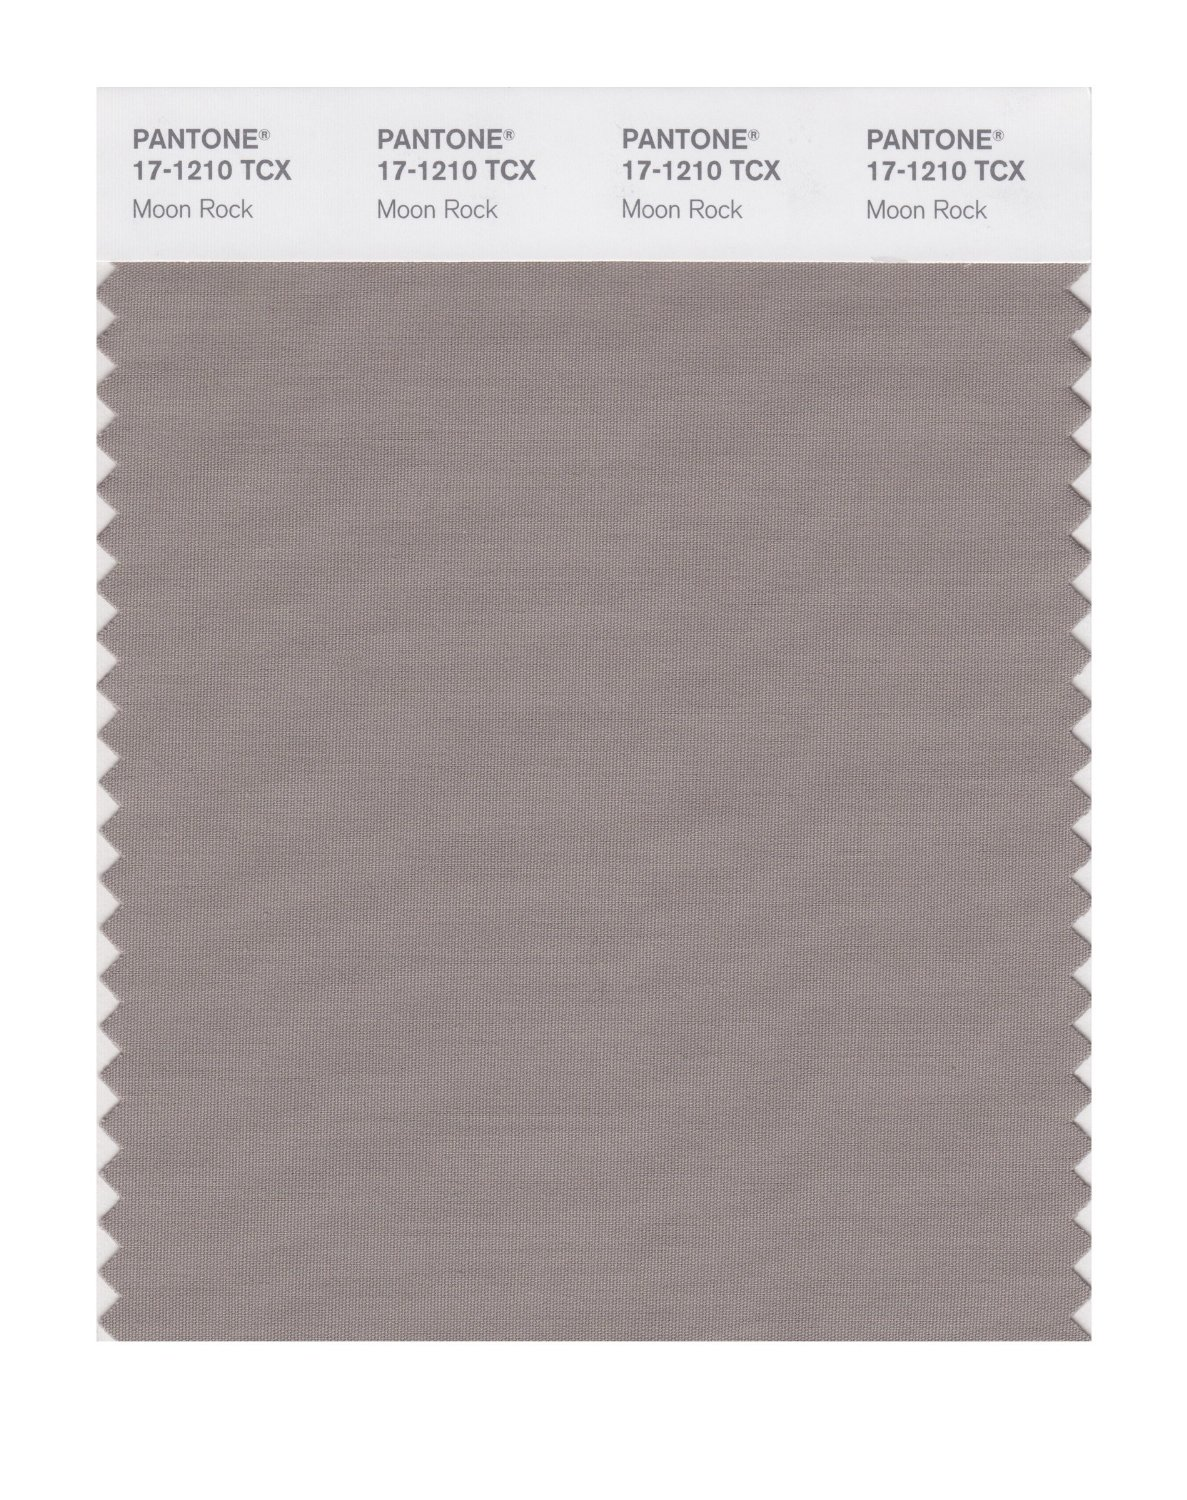 Pantone Smart Swatch 17-1210 Moon Rock